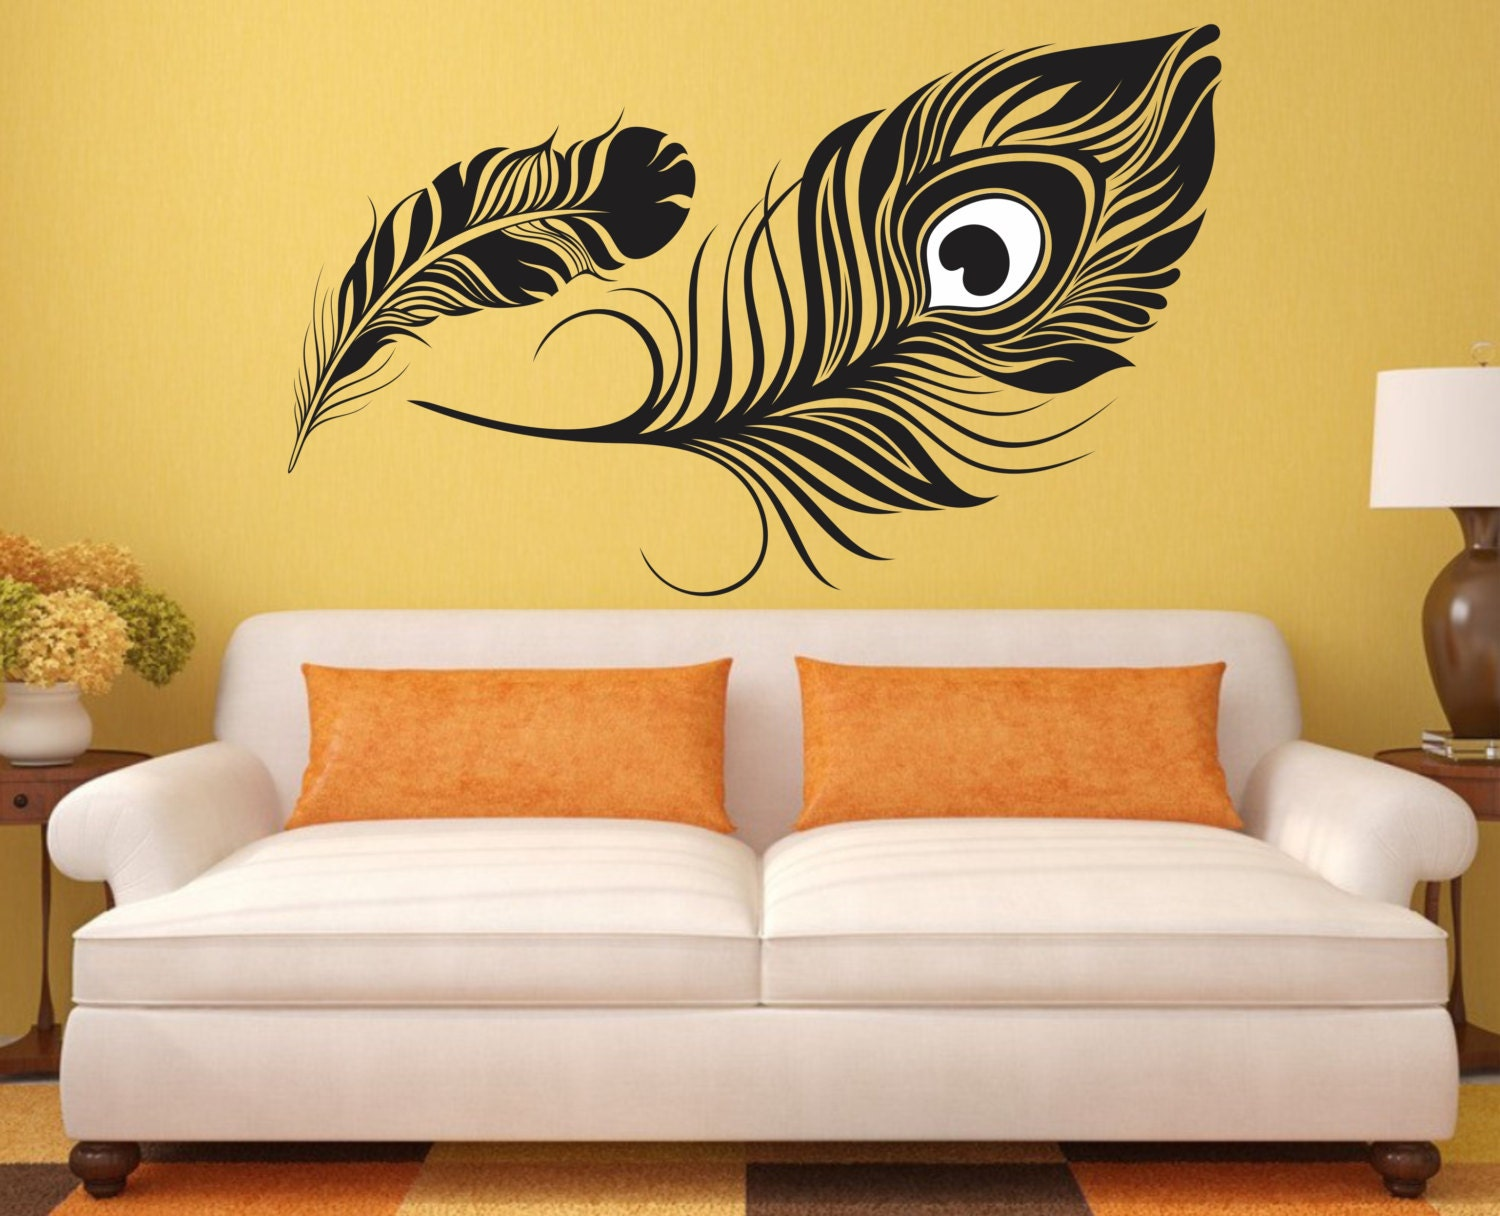 feather wall decal peacock feather vinyl sticker decals art decor design wall decal girls room birds vinyl wall art - Wall Art Design Decals